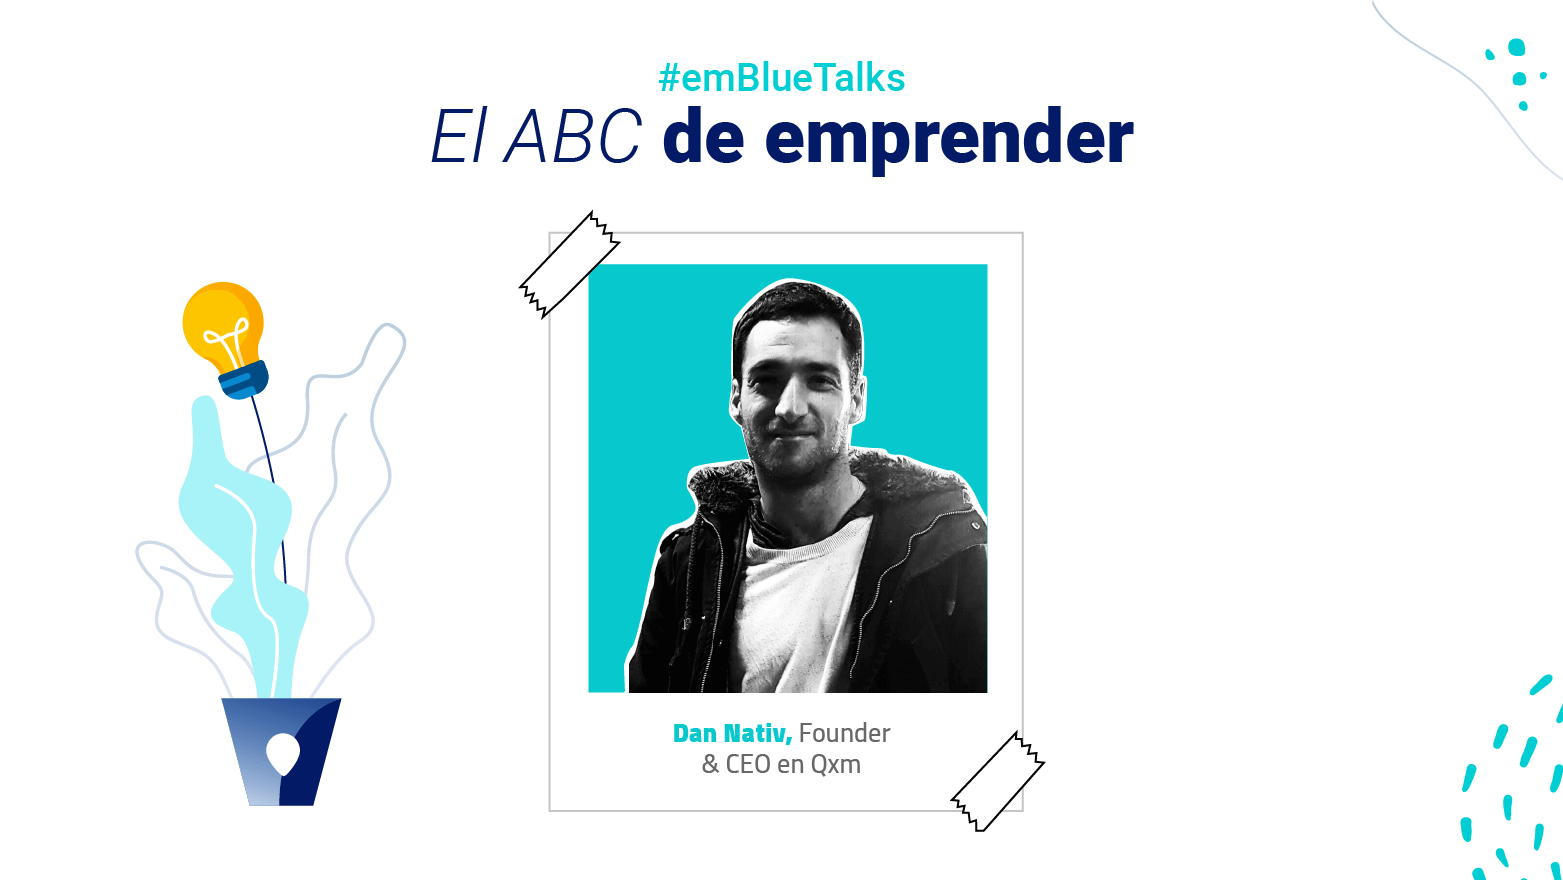 El ABC de emprender con Dan Nativ